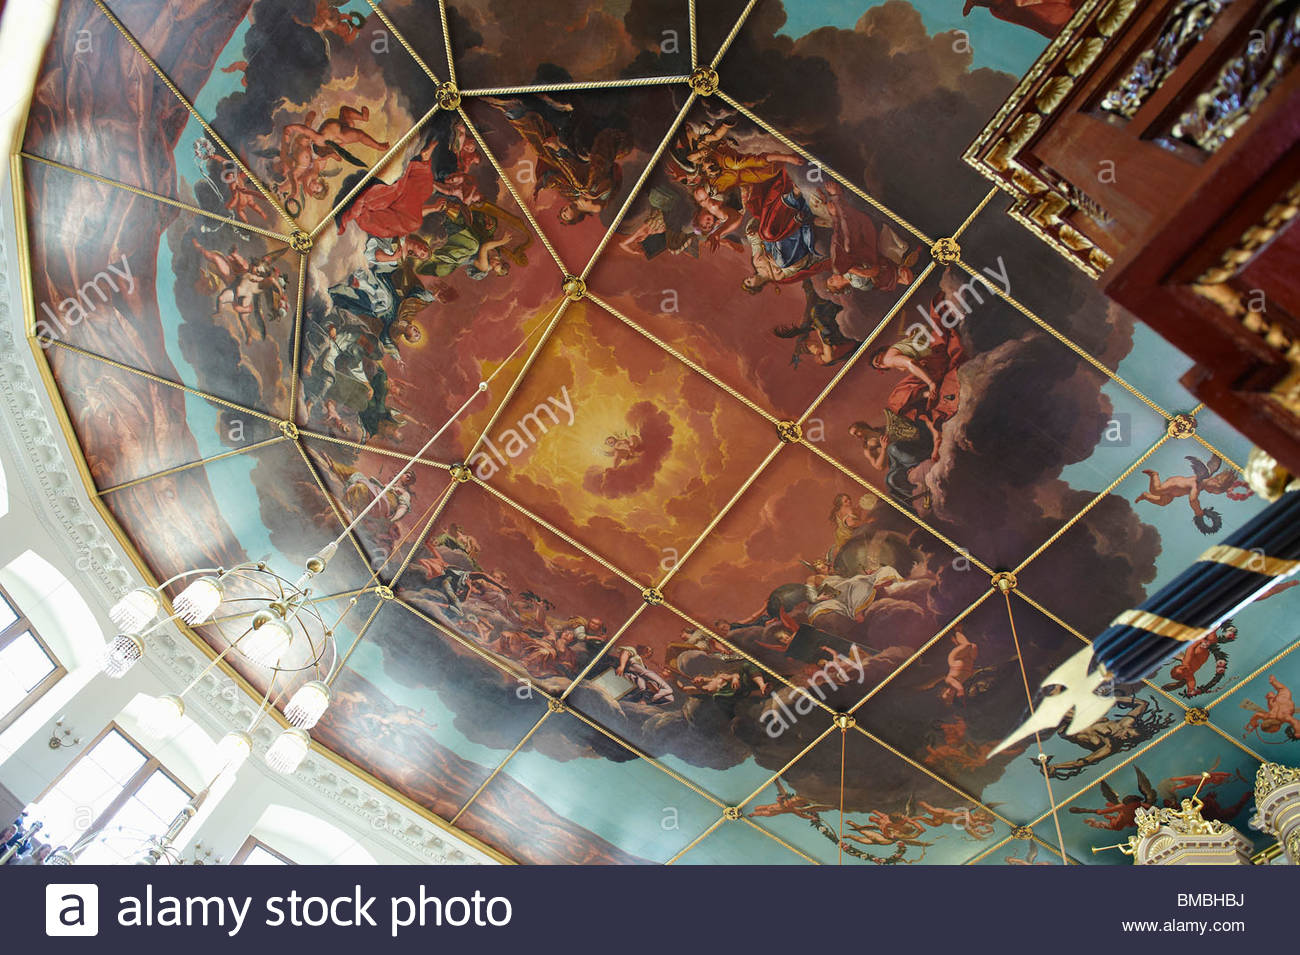 Oxford ,Sheldonian Theatre, Ceiling,Art,Painting Stock Photo